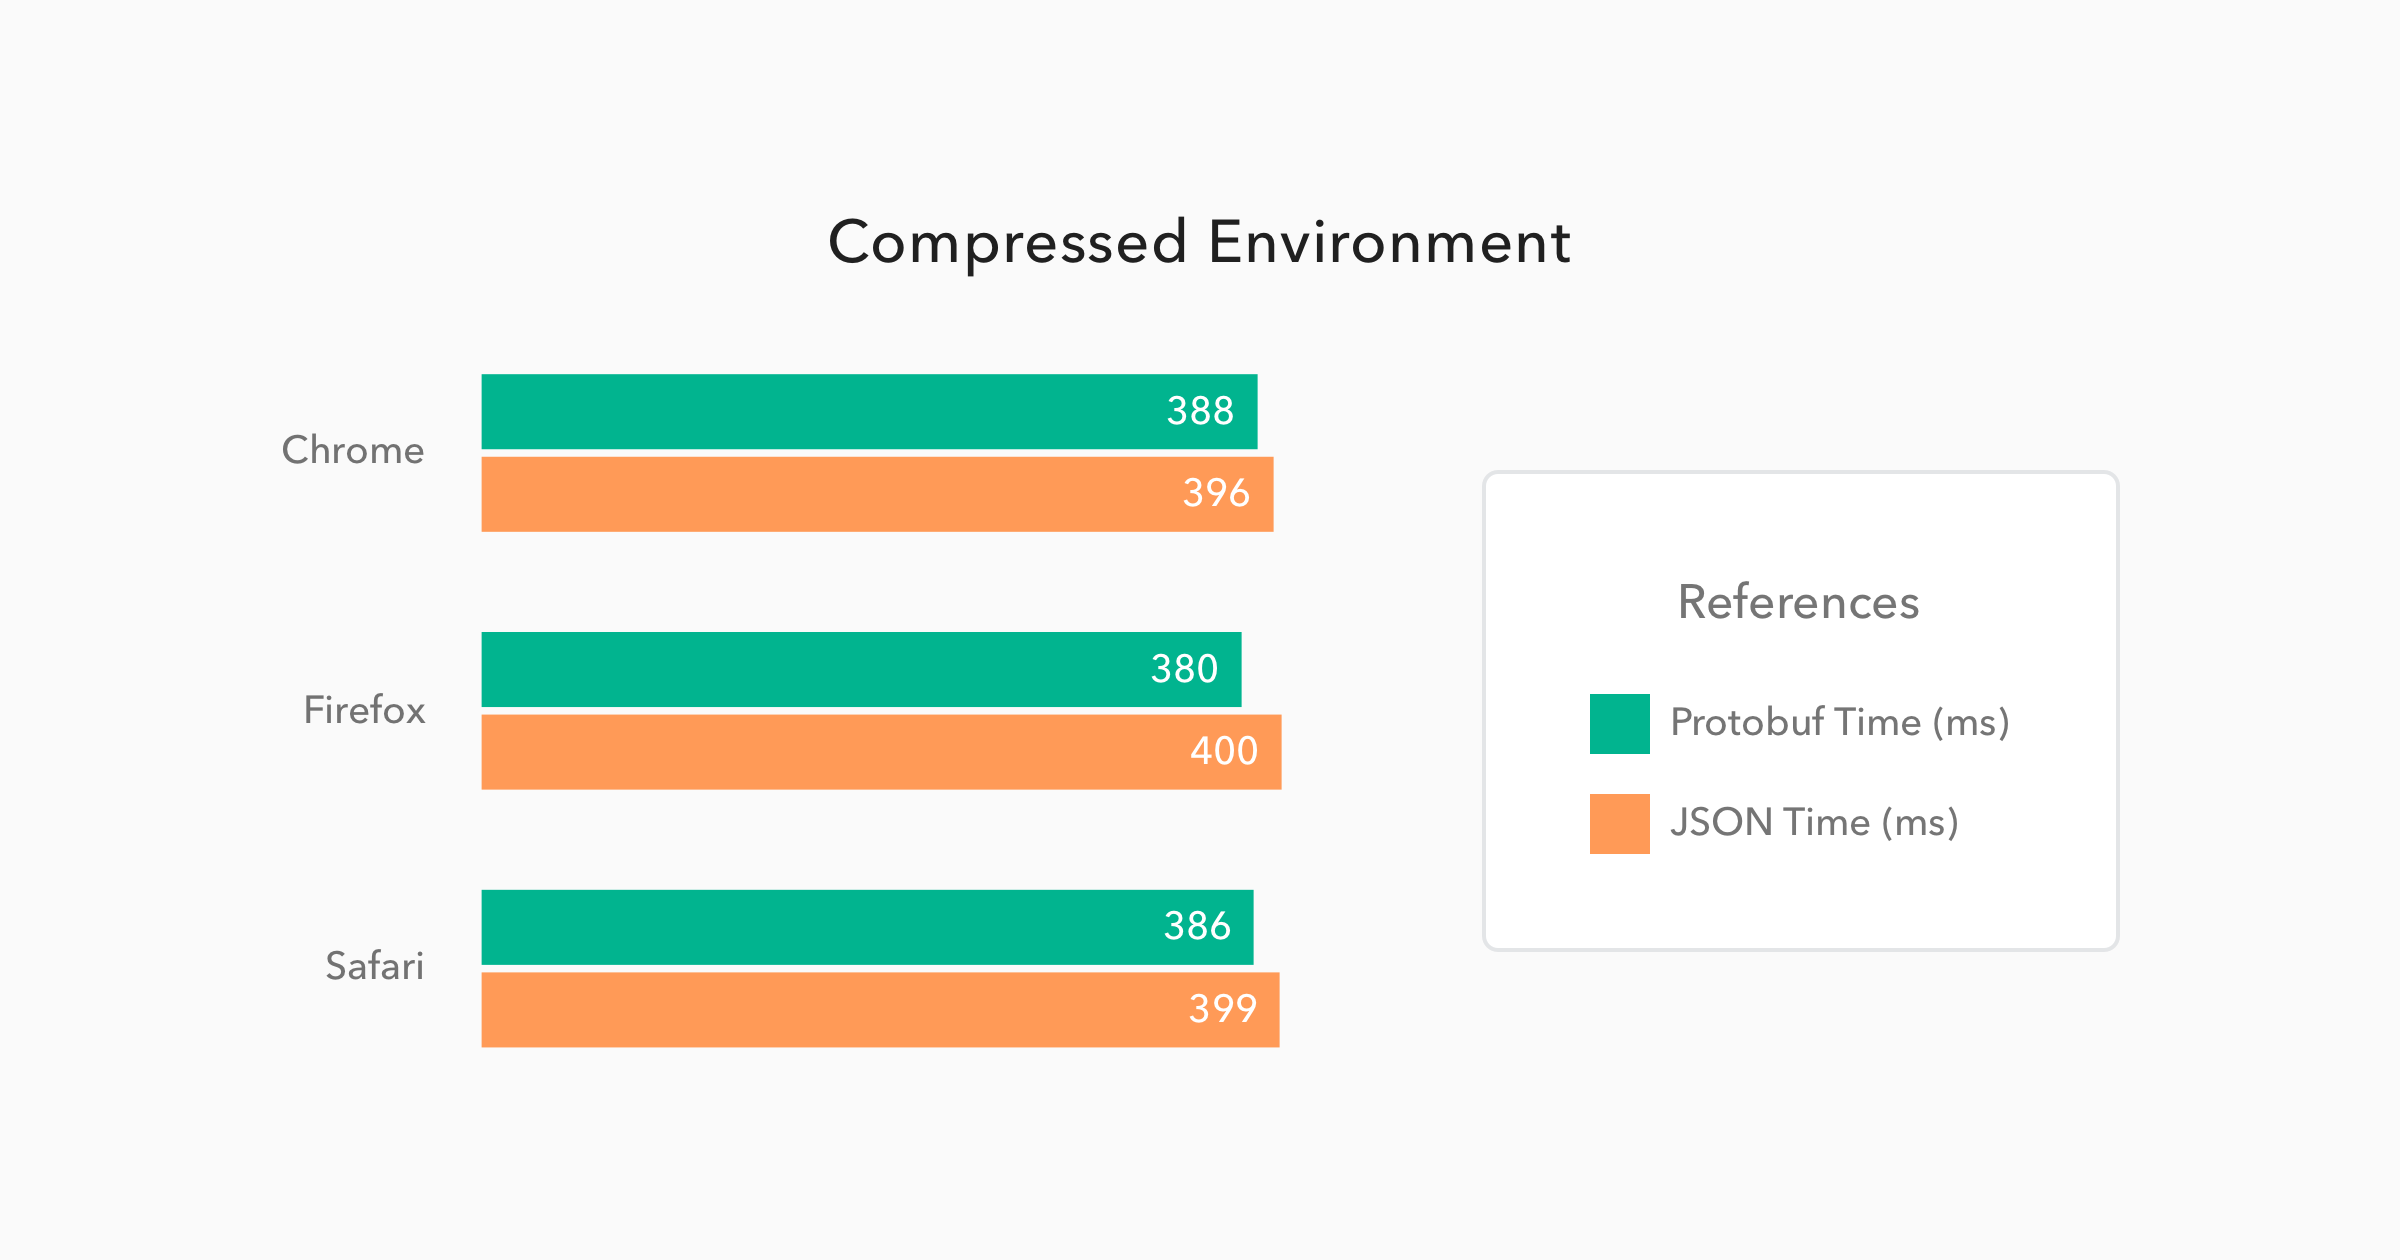 Comparison of Protobuf/JSON performance on compressed GET requests